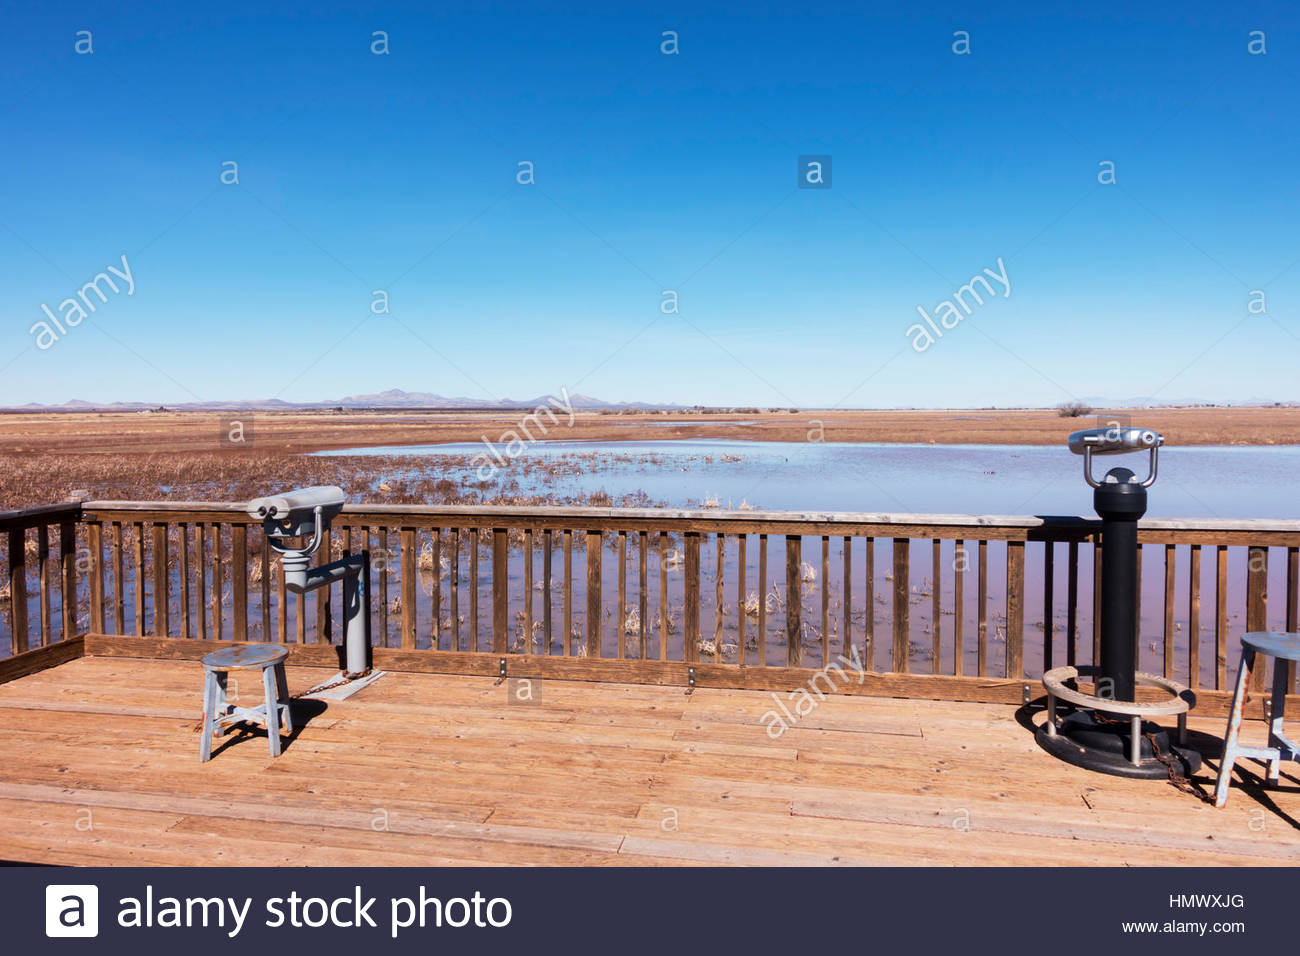 View from one of the observation decks at Whitewater Draw Wildlife Area in southeastern Arizona - Stock Image